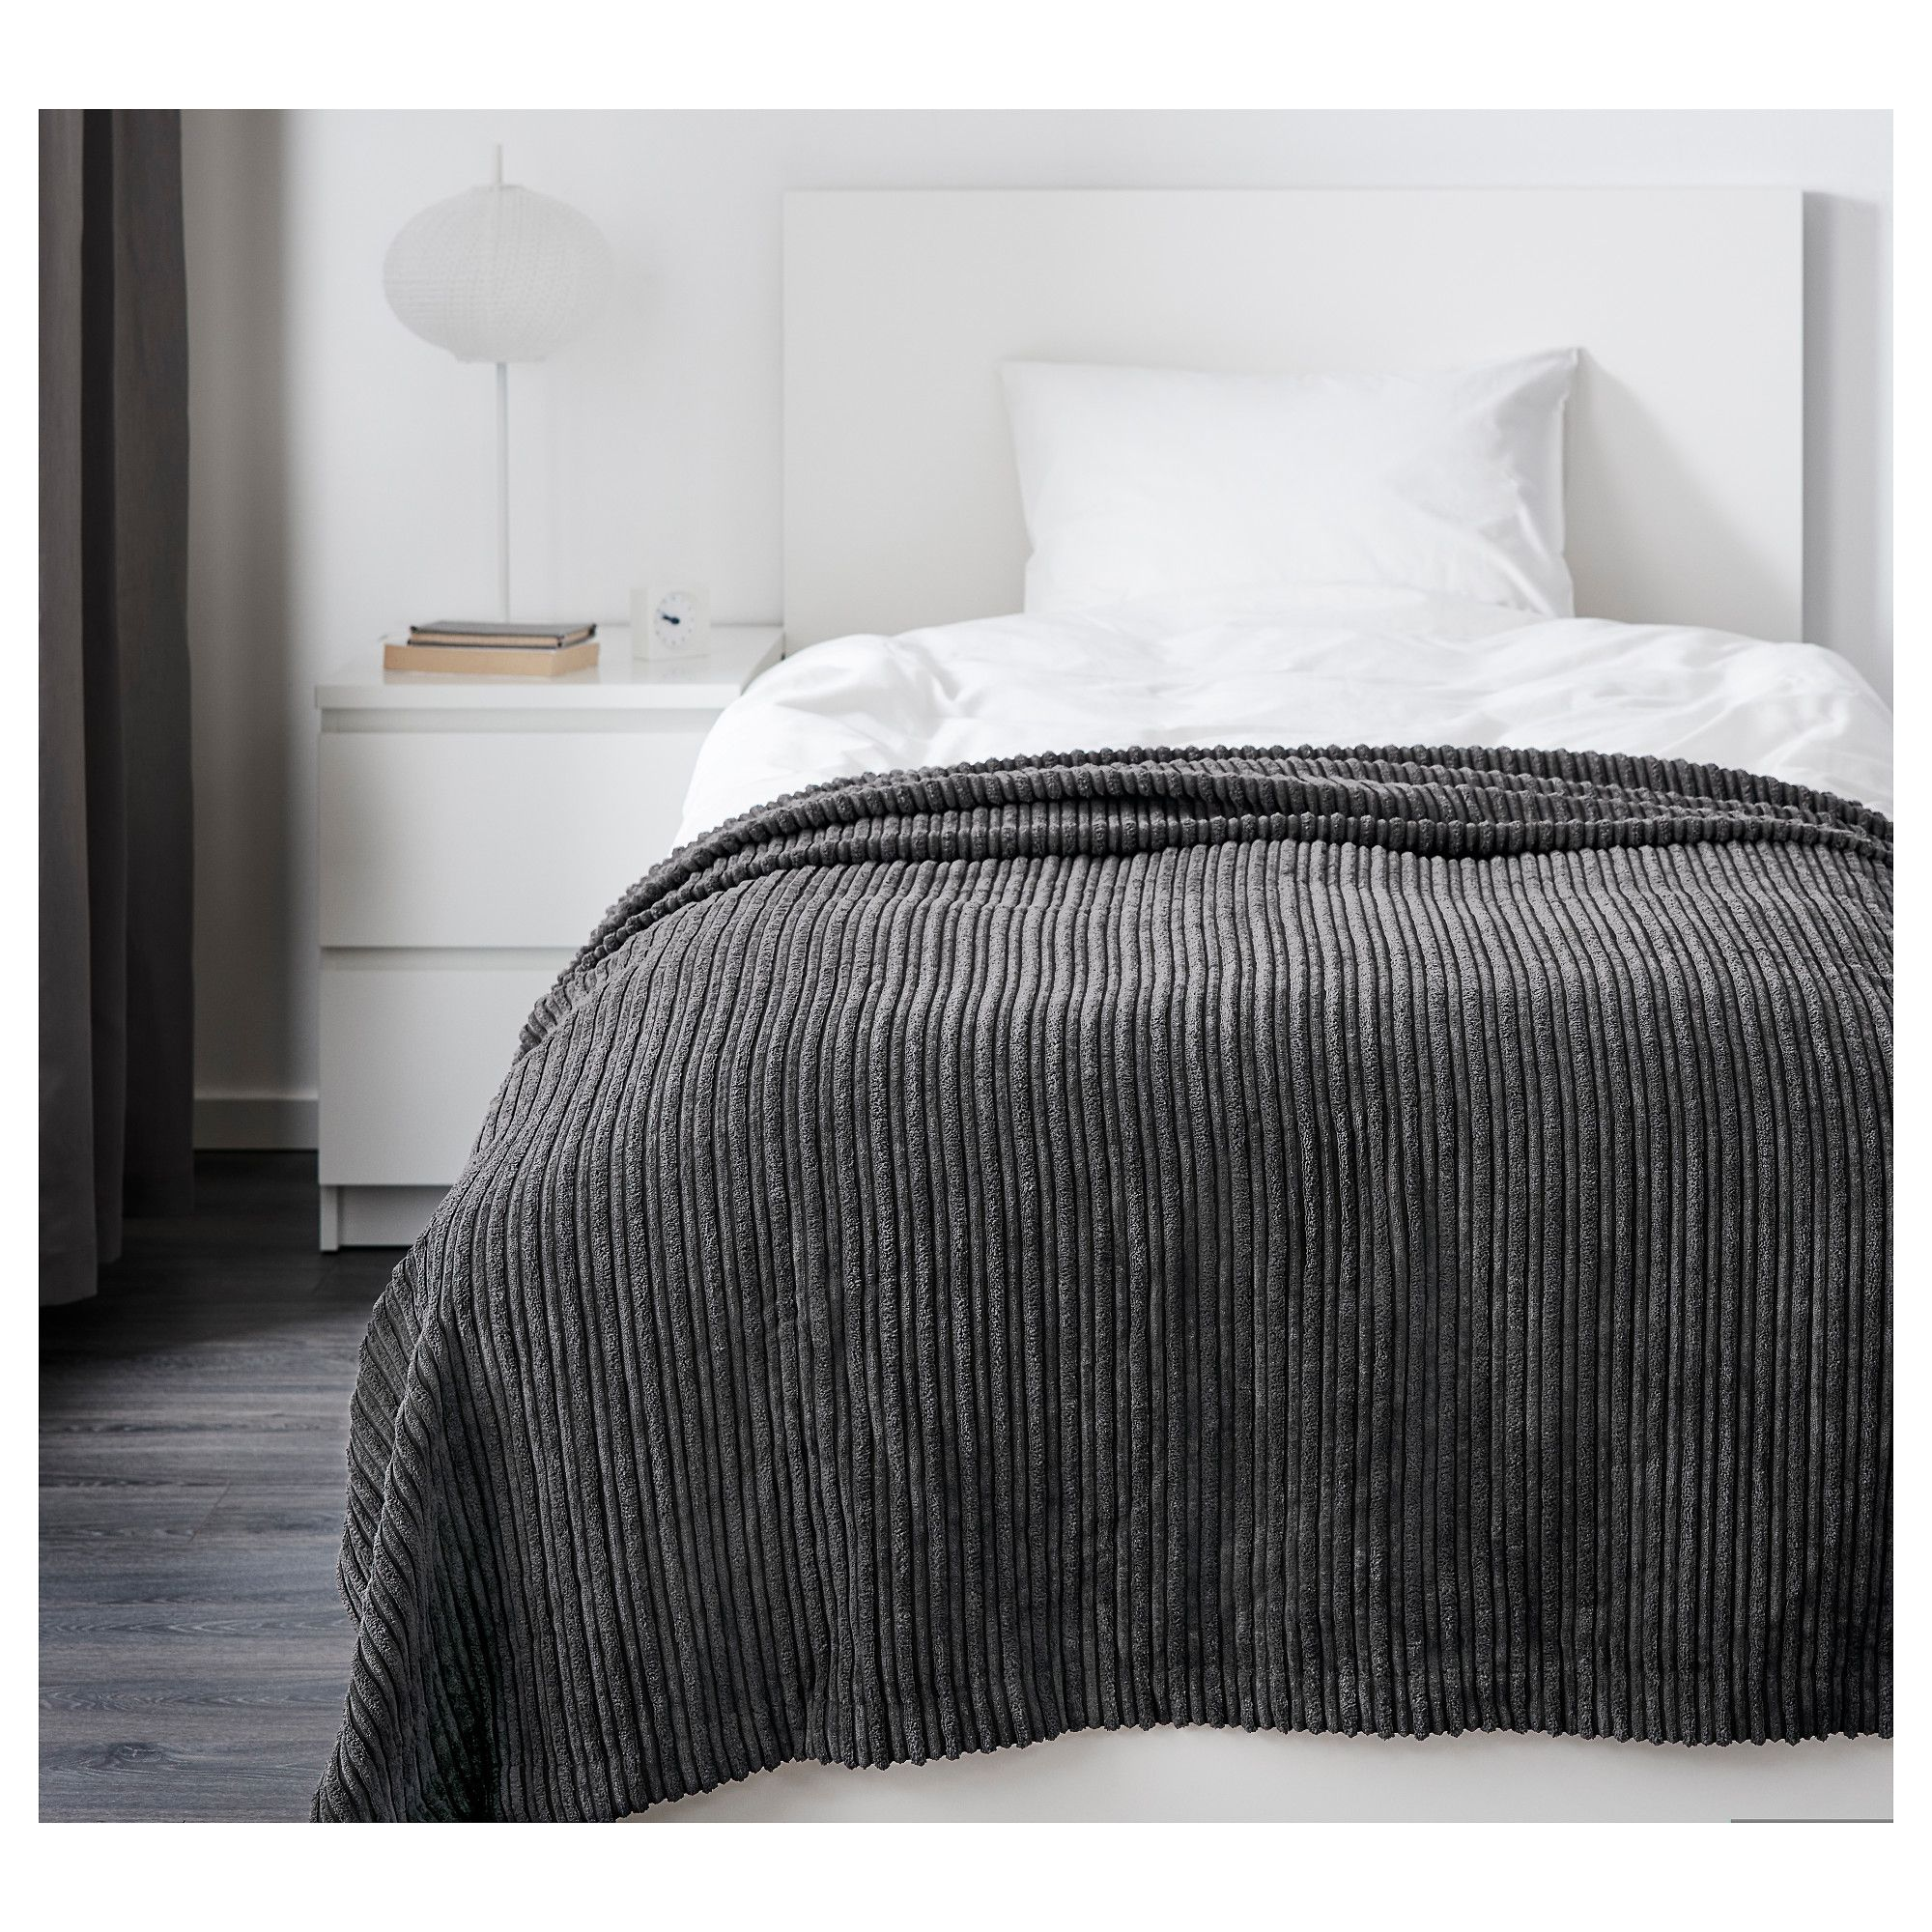 Ikea TusenskÖna Bedspread Twin Full Double Packaging Designed As A Storage Bag Easy To Protect Transport And The Product